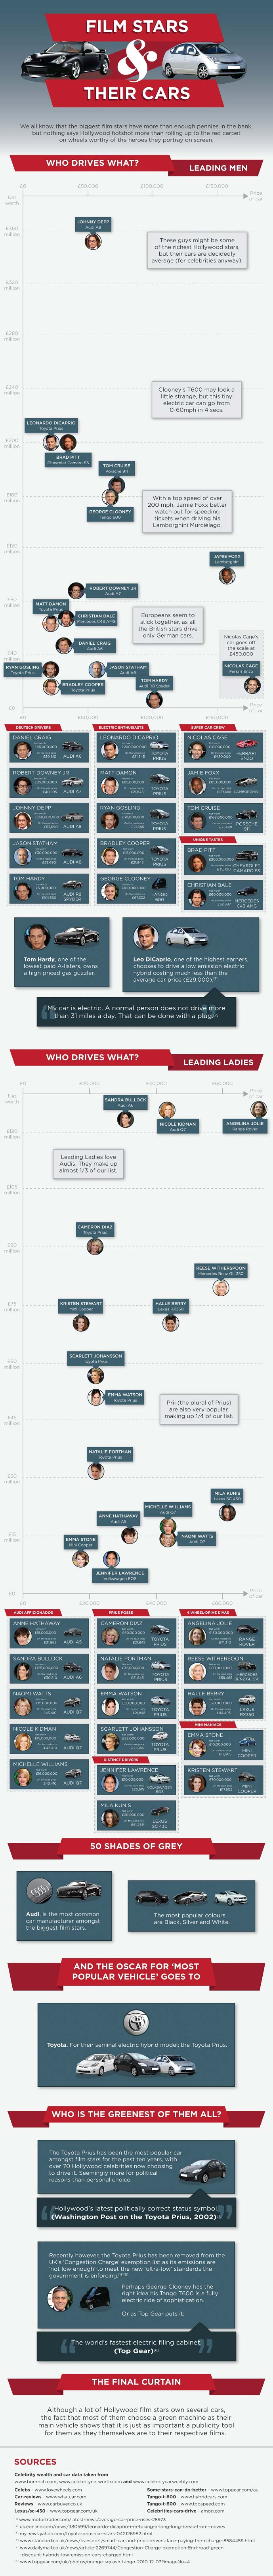 Starring Hollywood Cars-Infographic